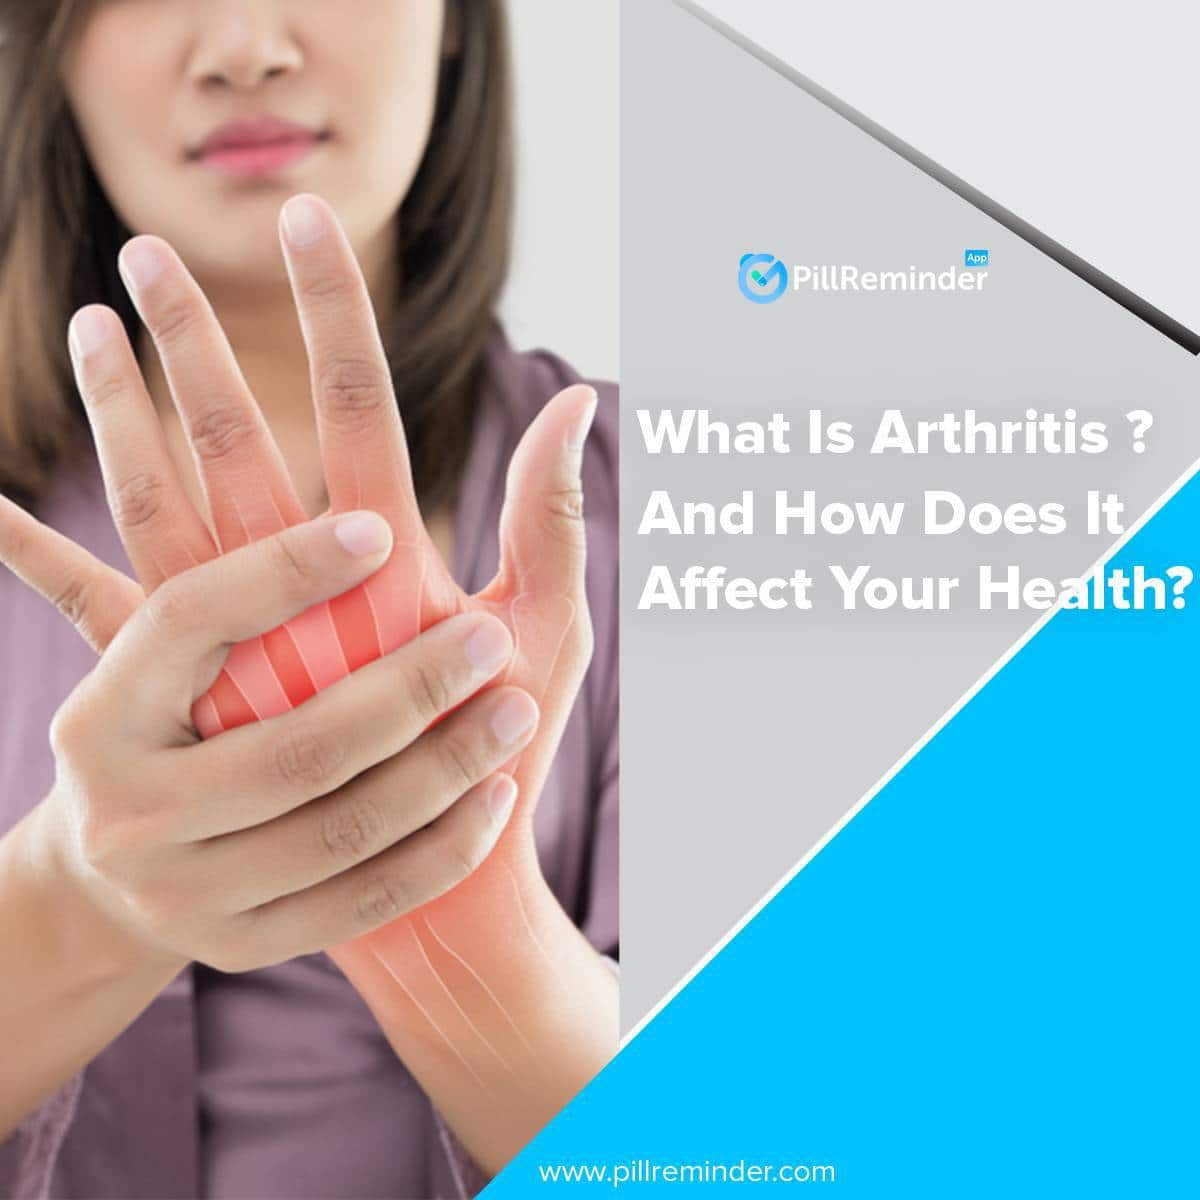 What Is Arthritis and How Does It Affect Your Health